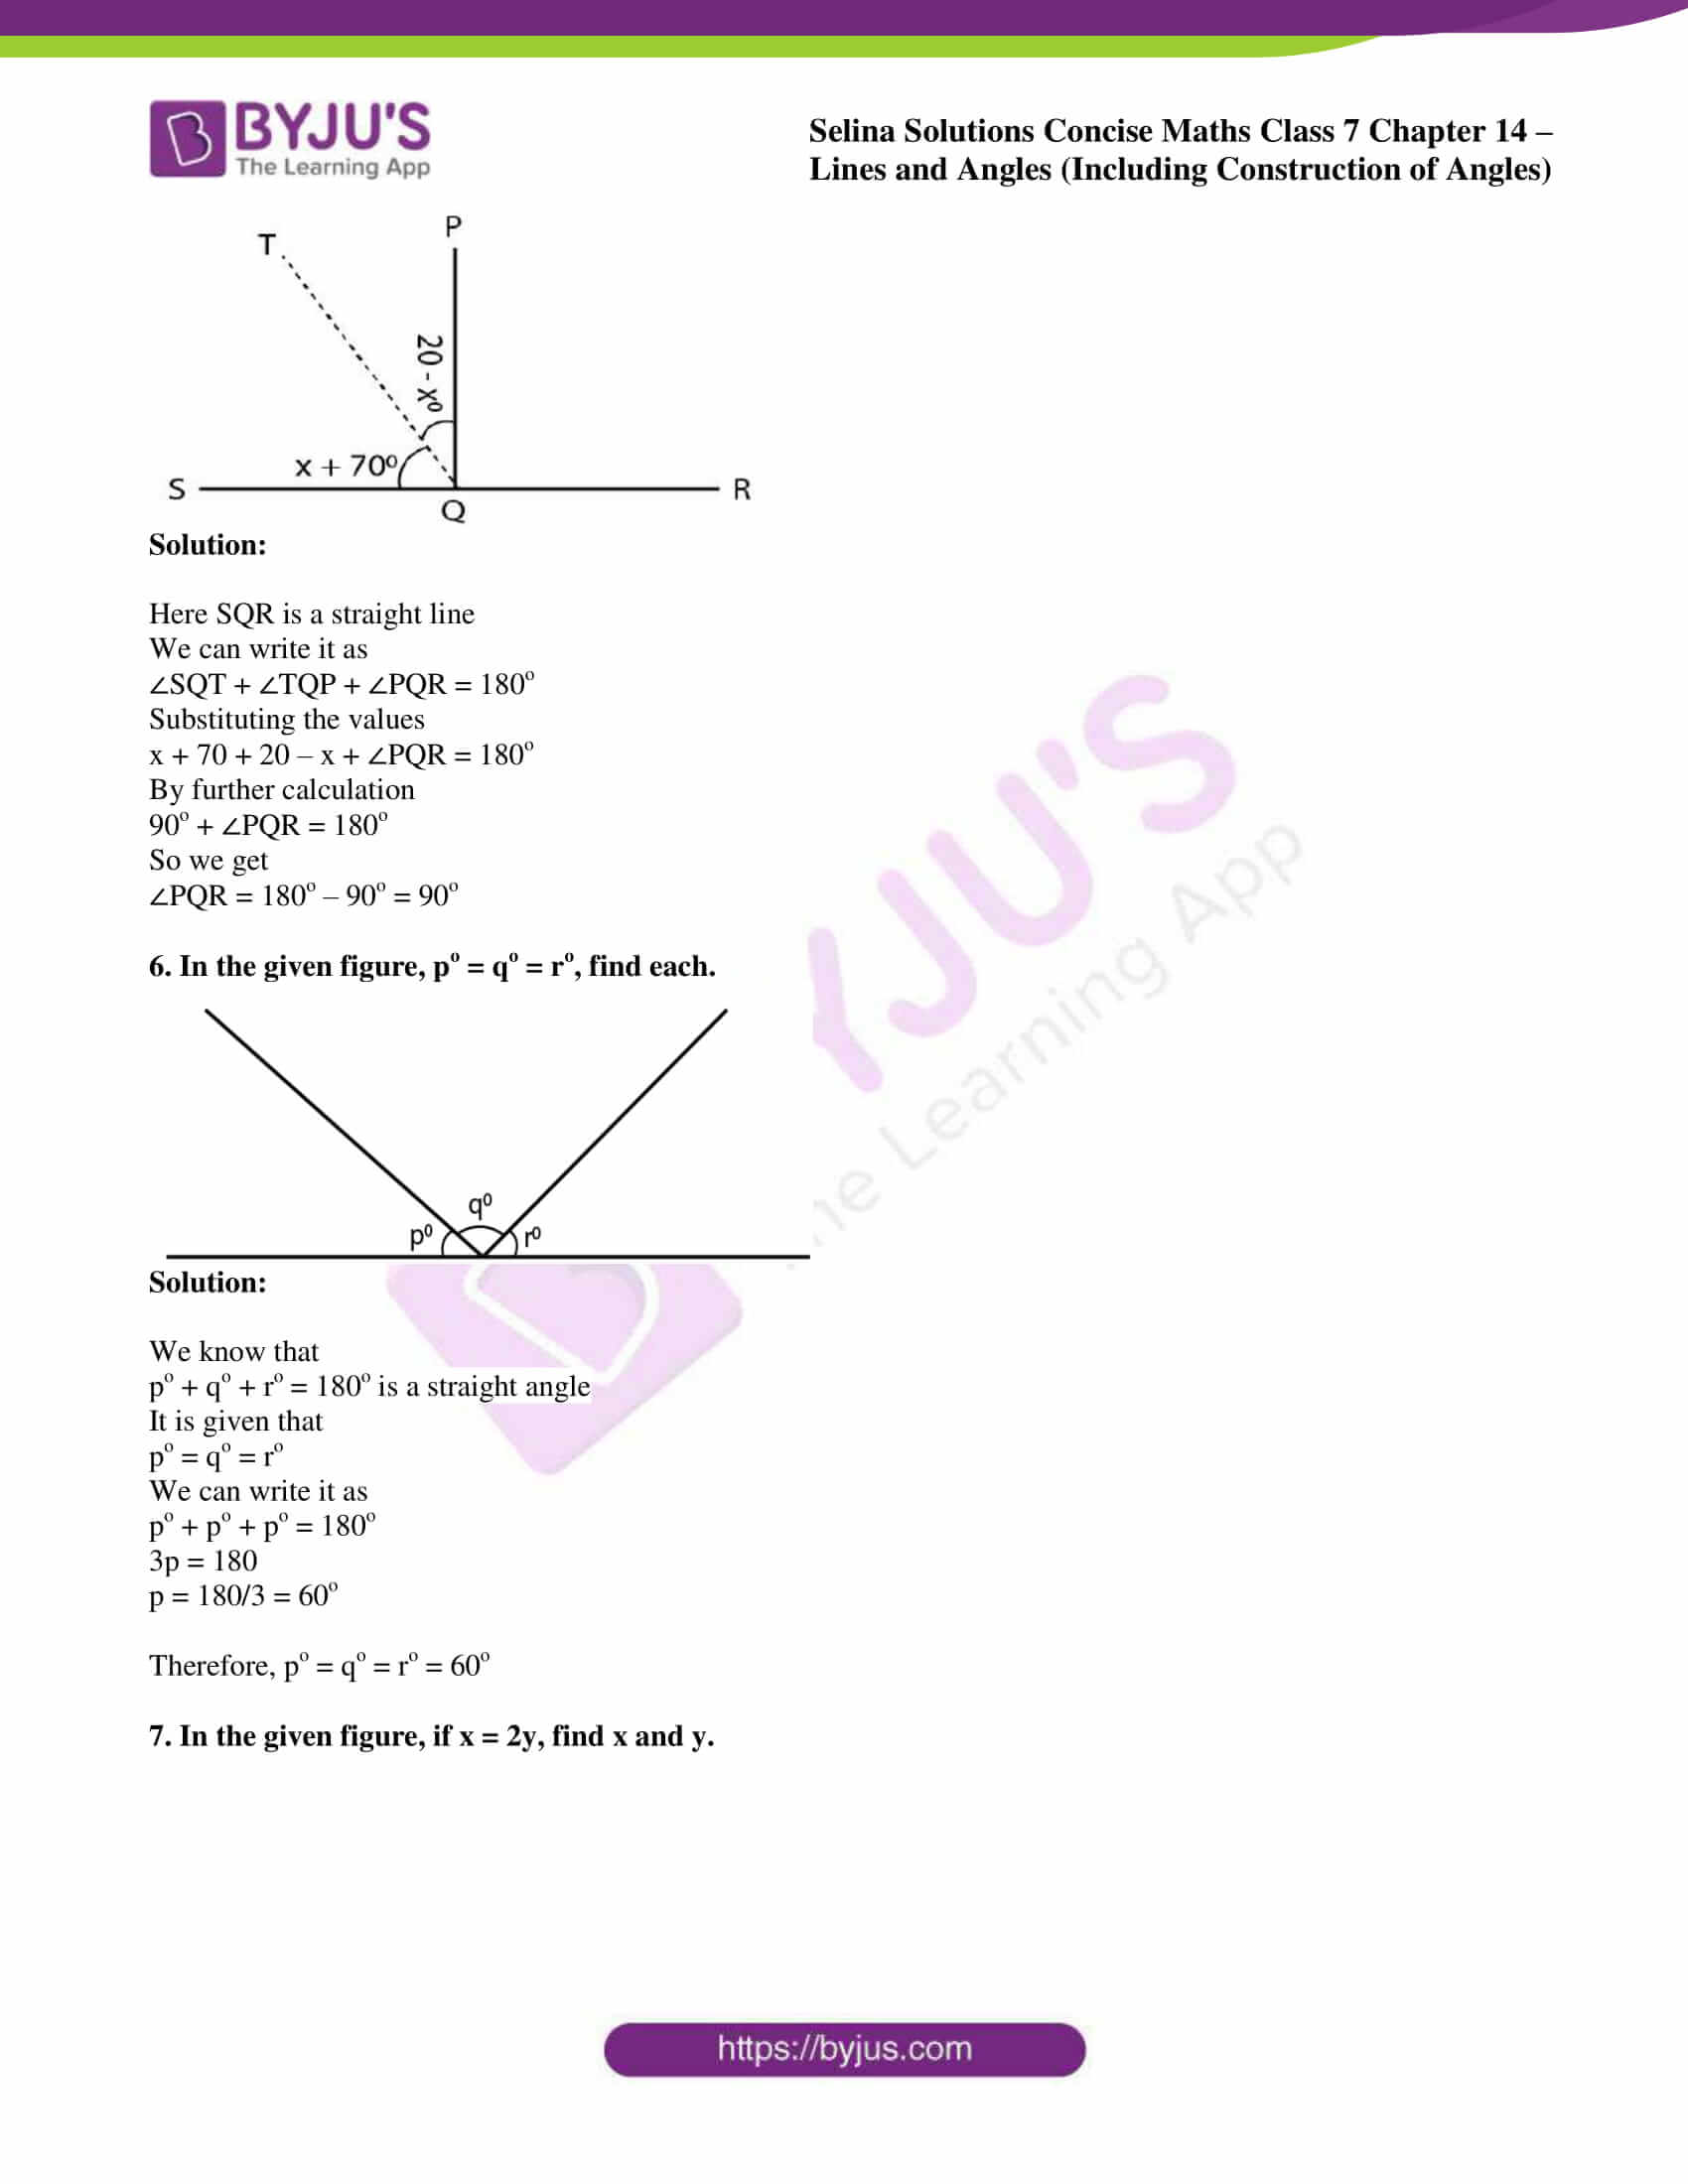 selina solution concise maths class 7 ch 14a 4